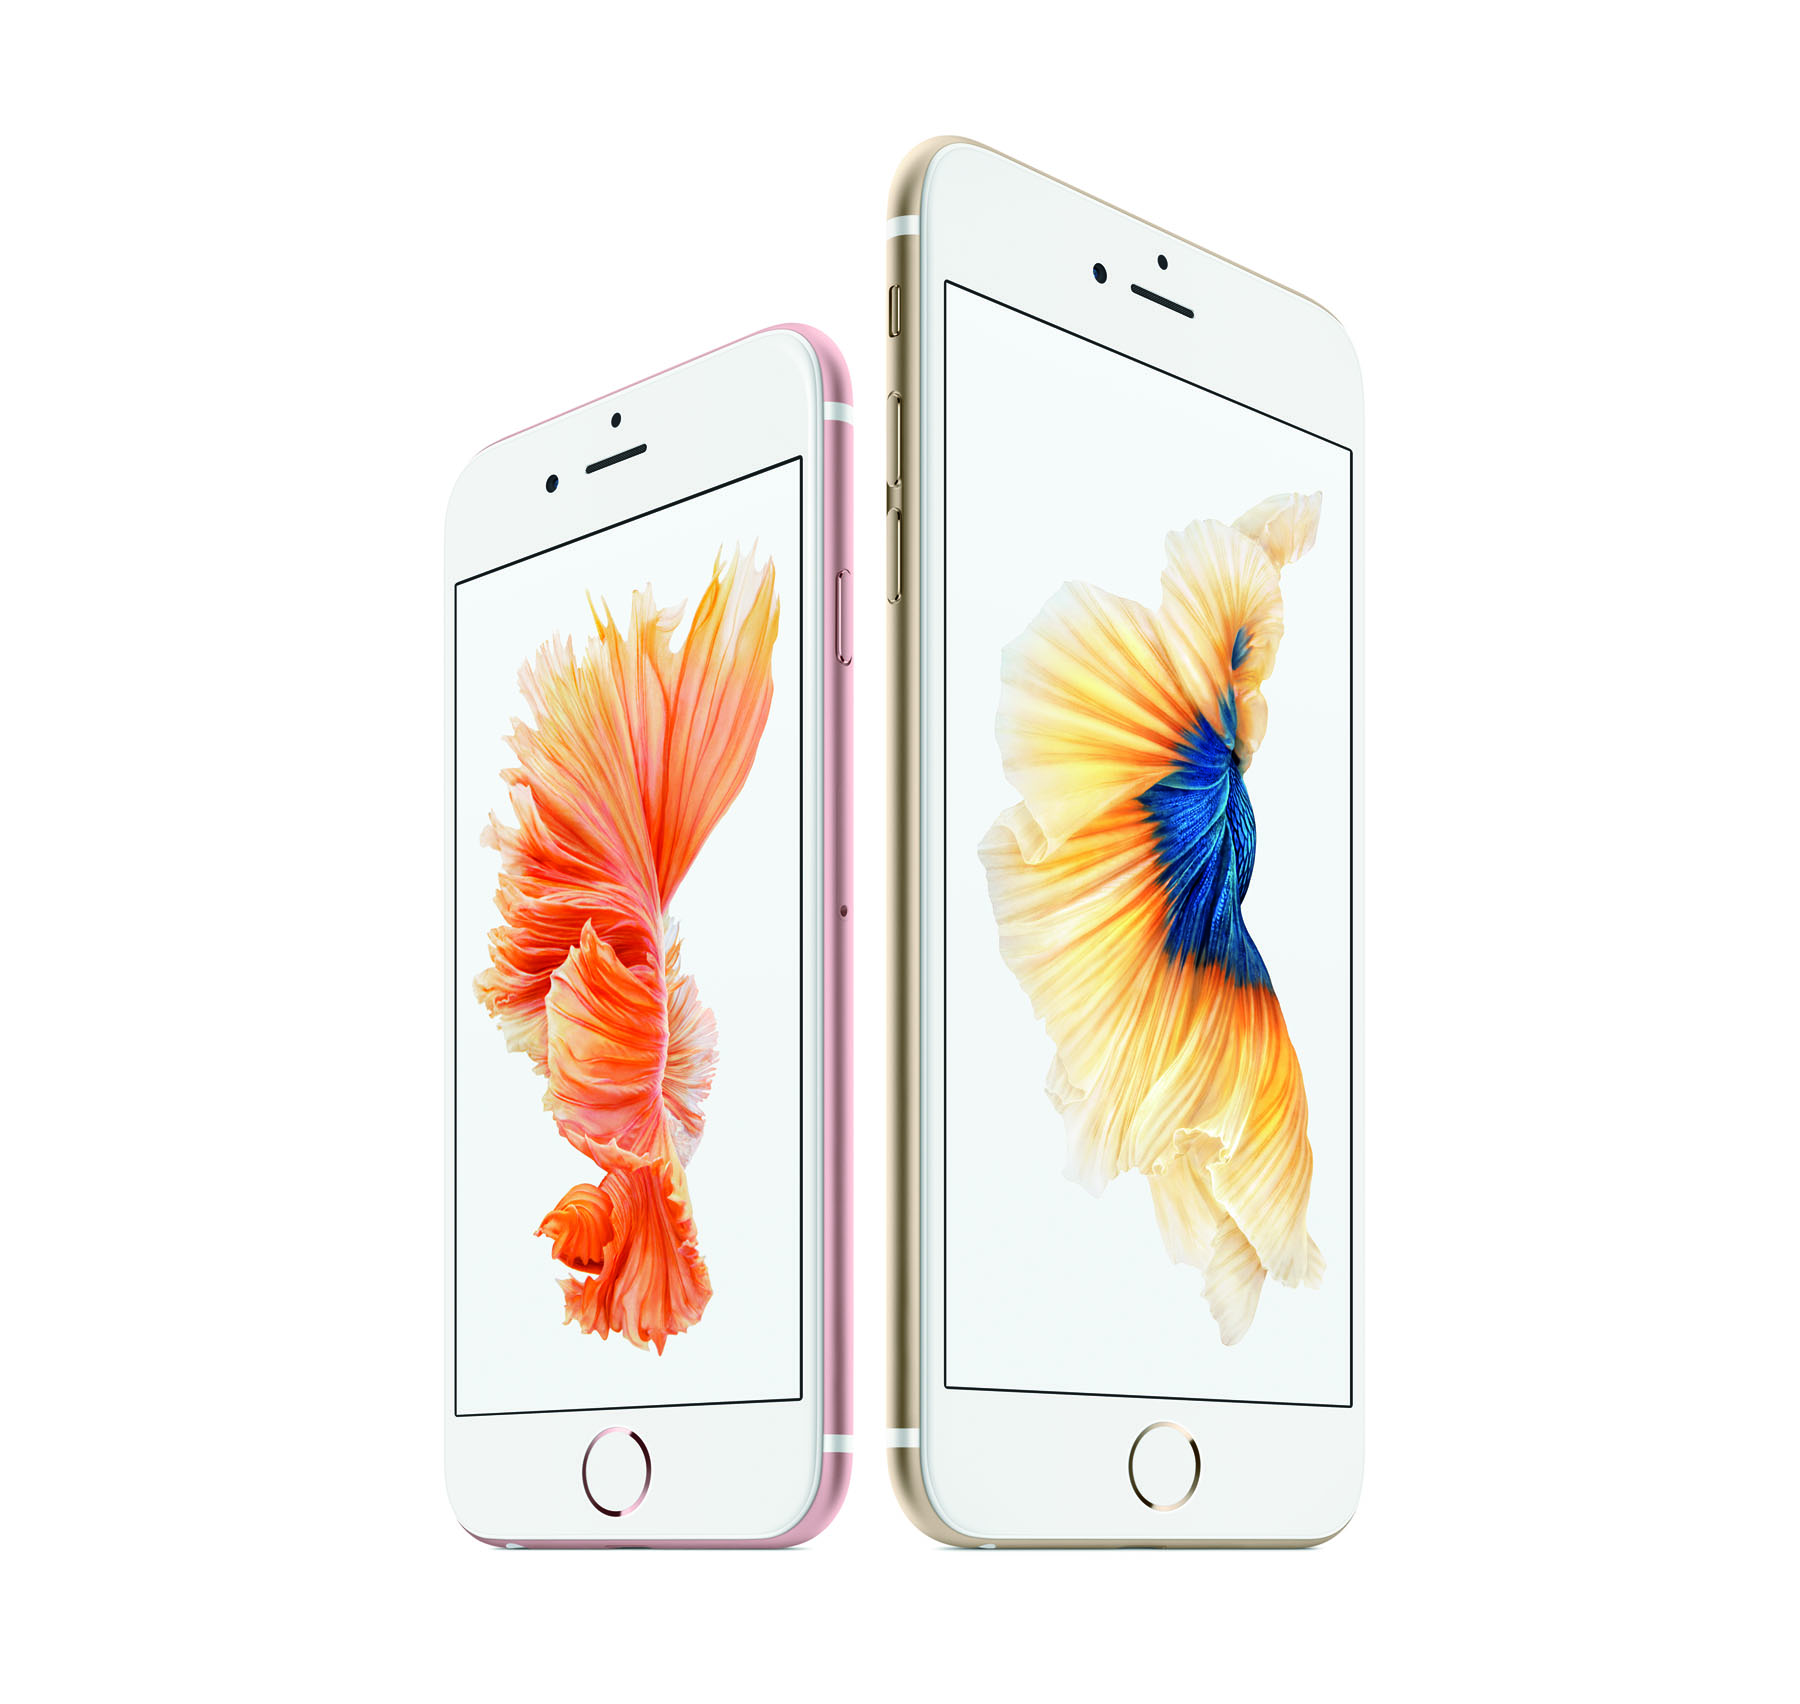 Apple iPhone 6s & iPhone 6s Plus